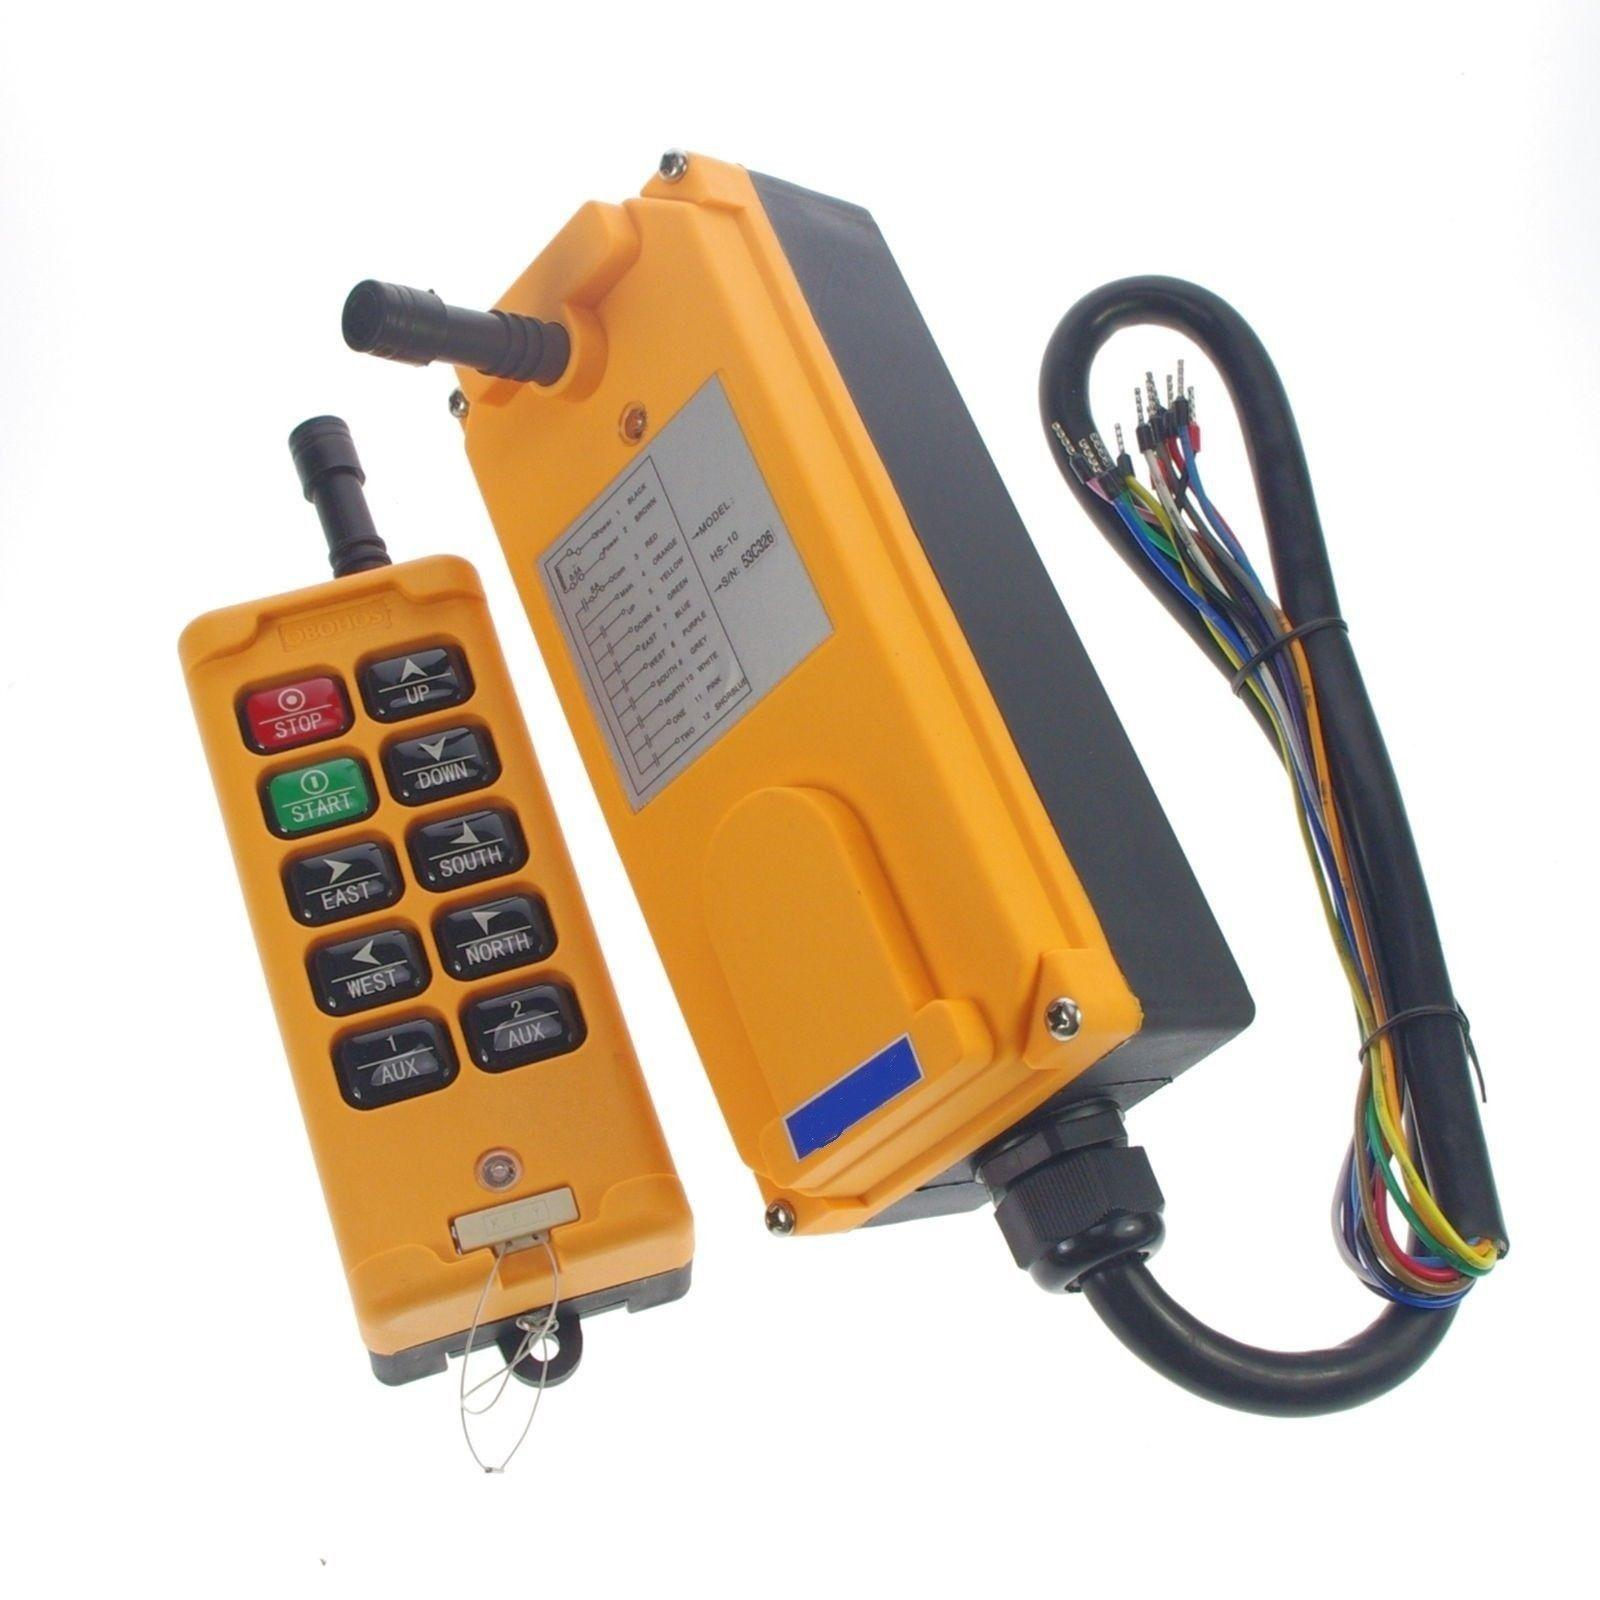 12V-415V 10 Channels 1 Speed 1 Transmitter Control Hoist Crane Remote Control System IP65 CE цена